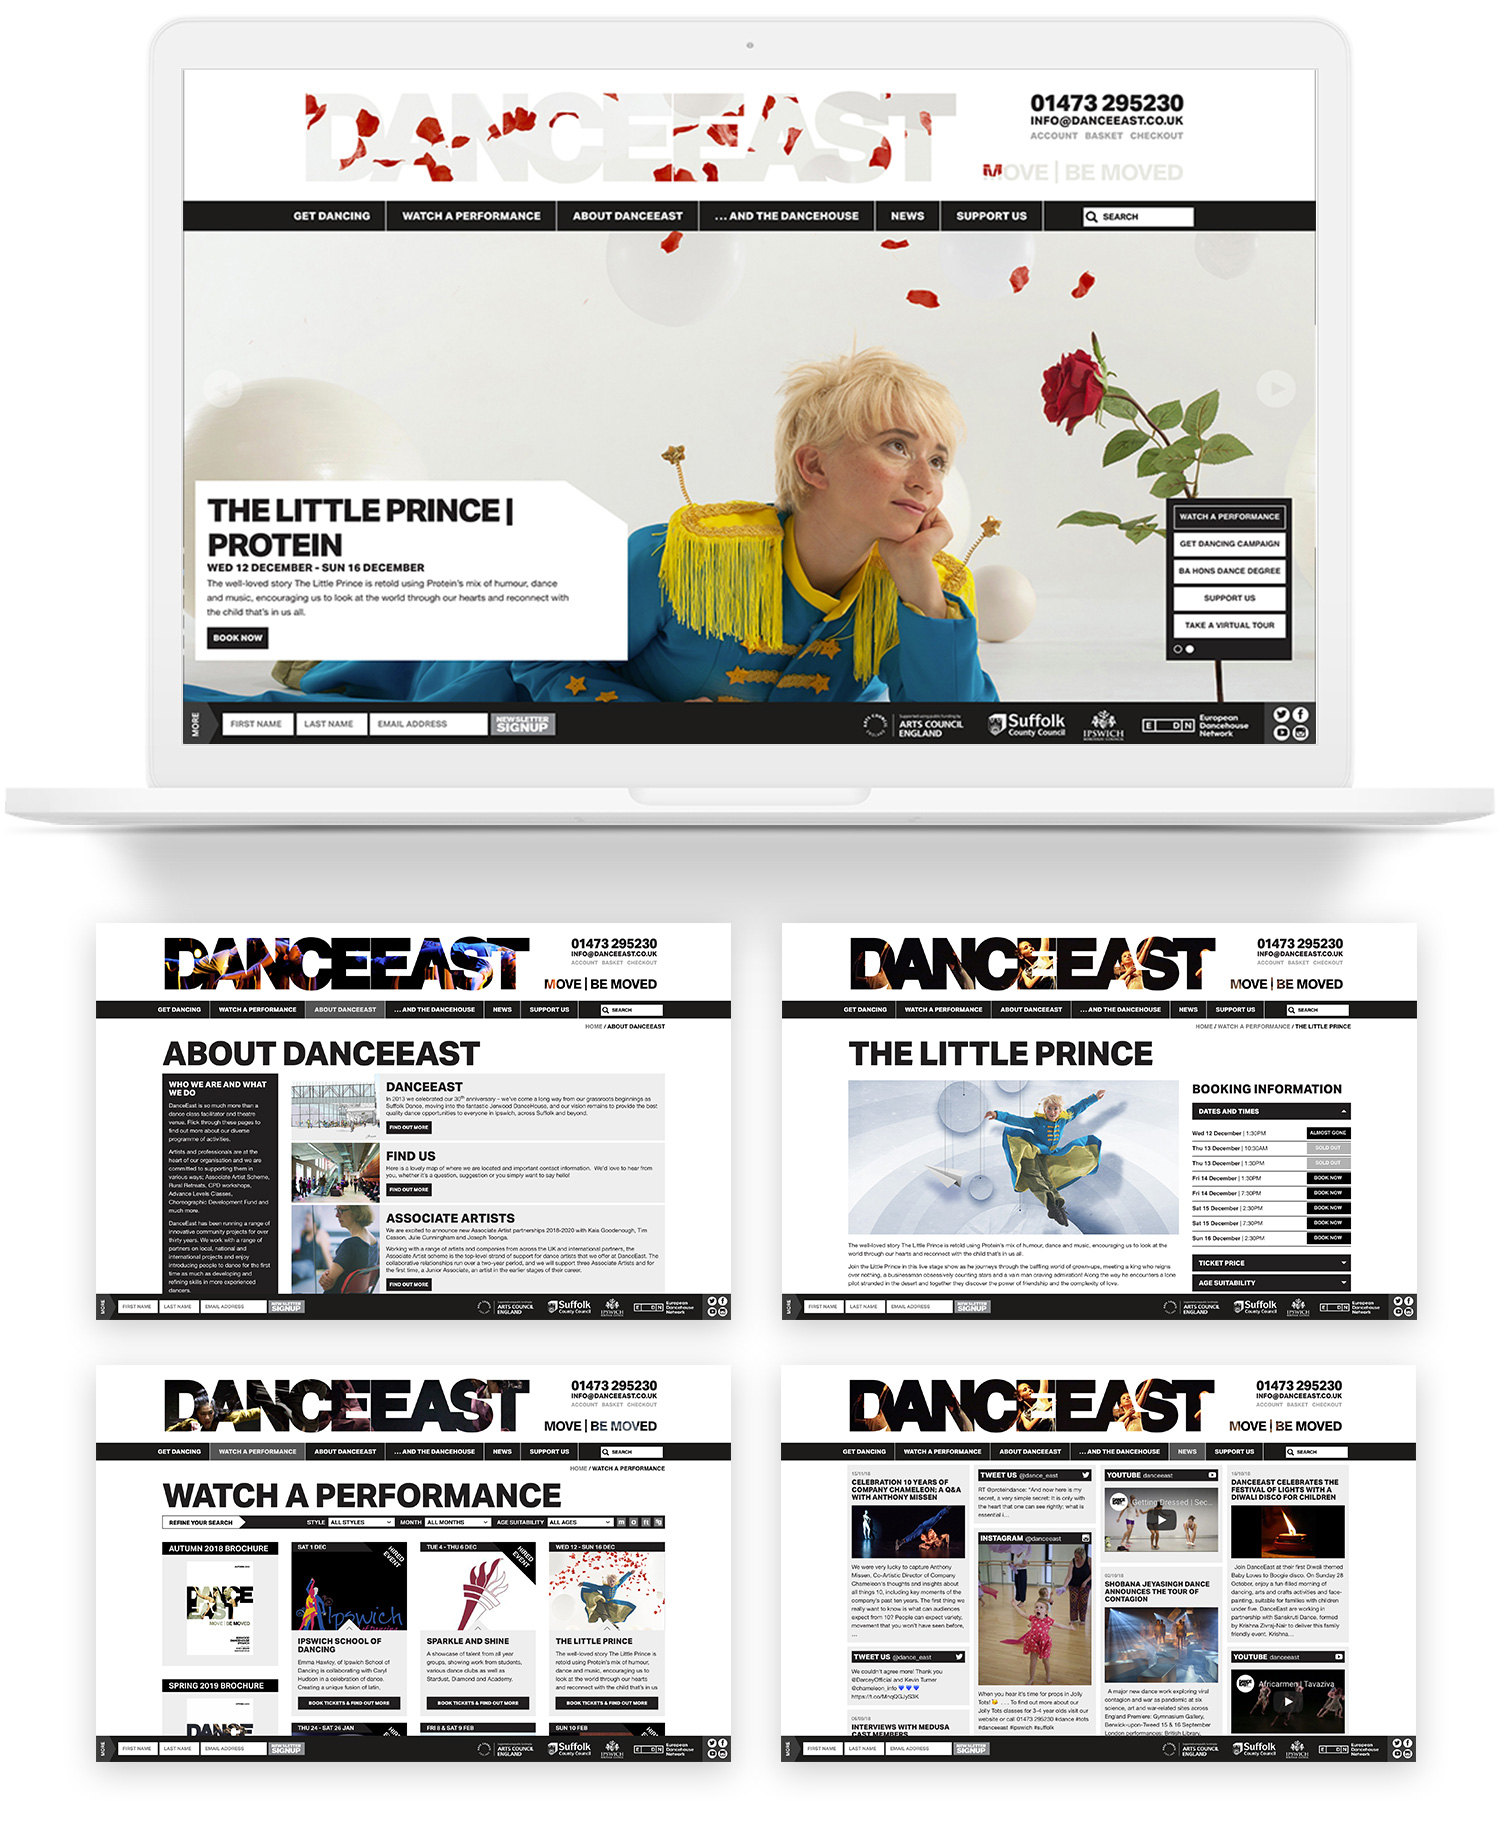 DanceEast website pages